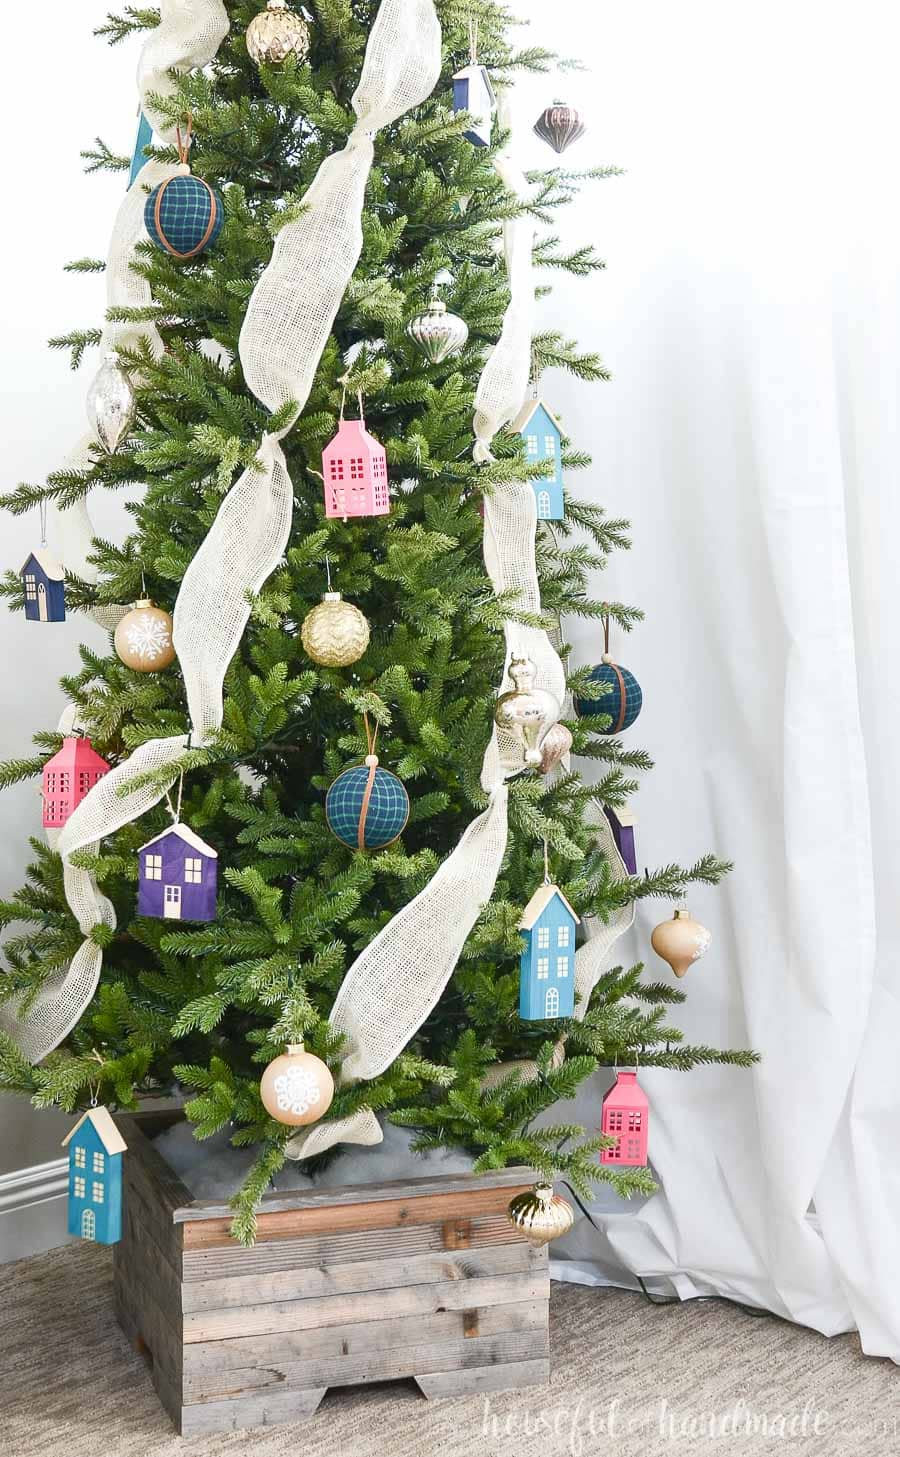 Showing some of the wood Christmas house ornaments made from scrap wood hanging on a Christmas tree decorated with jewel tones in a reclaimed wood Christmas tree stand.